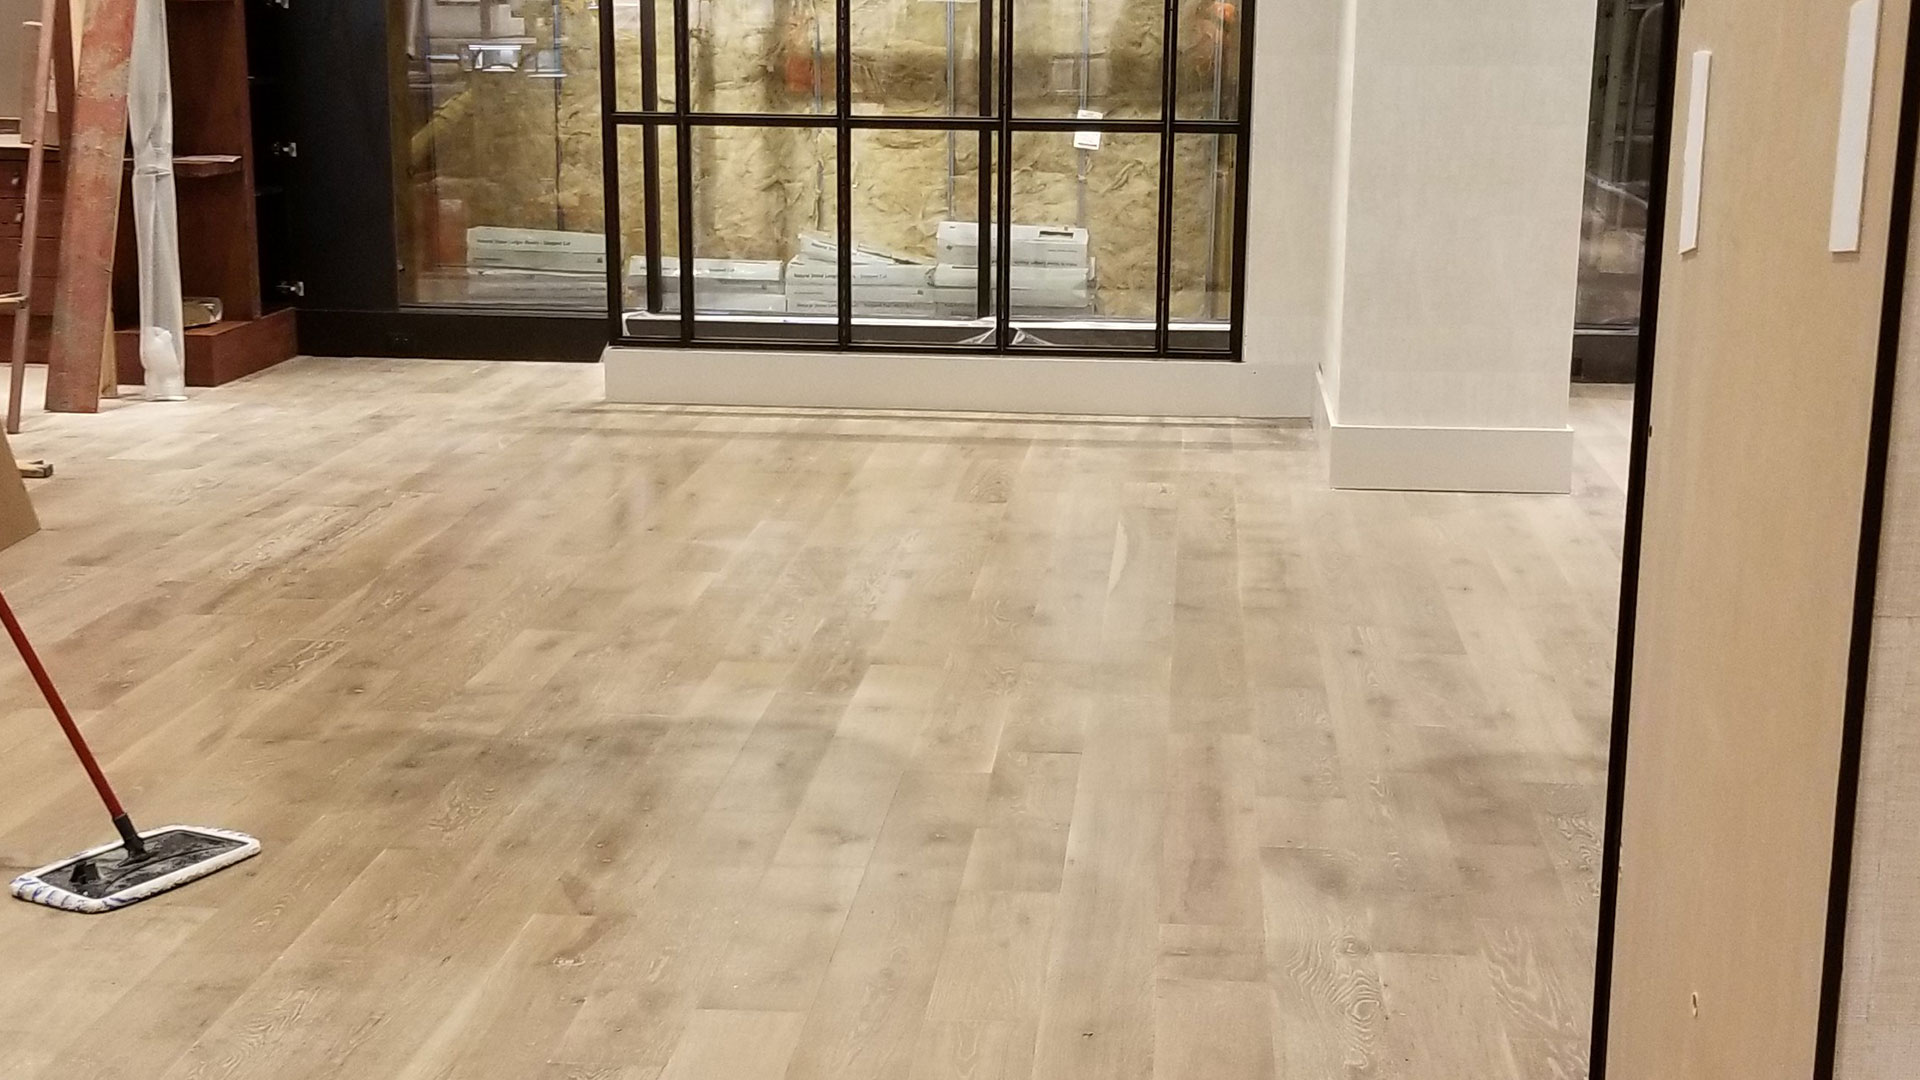 Commercial Carpet Cleaning Services in Atlanta, Roswell and Marietta GA